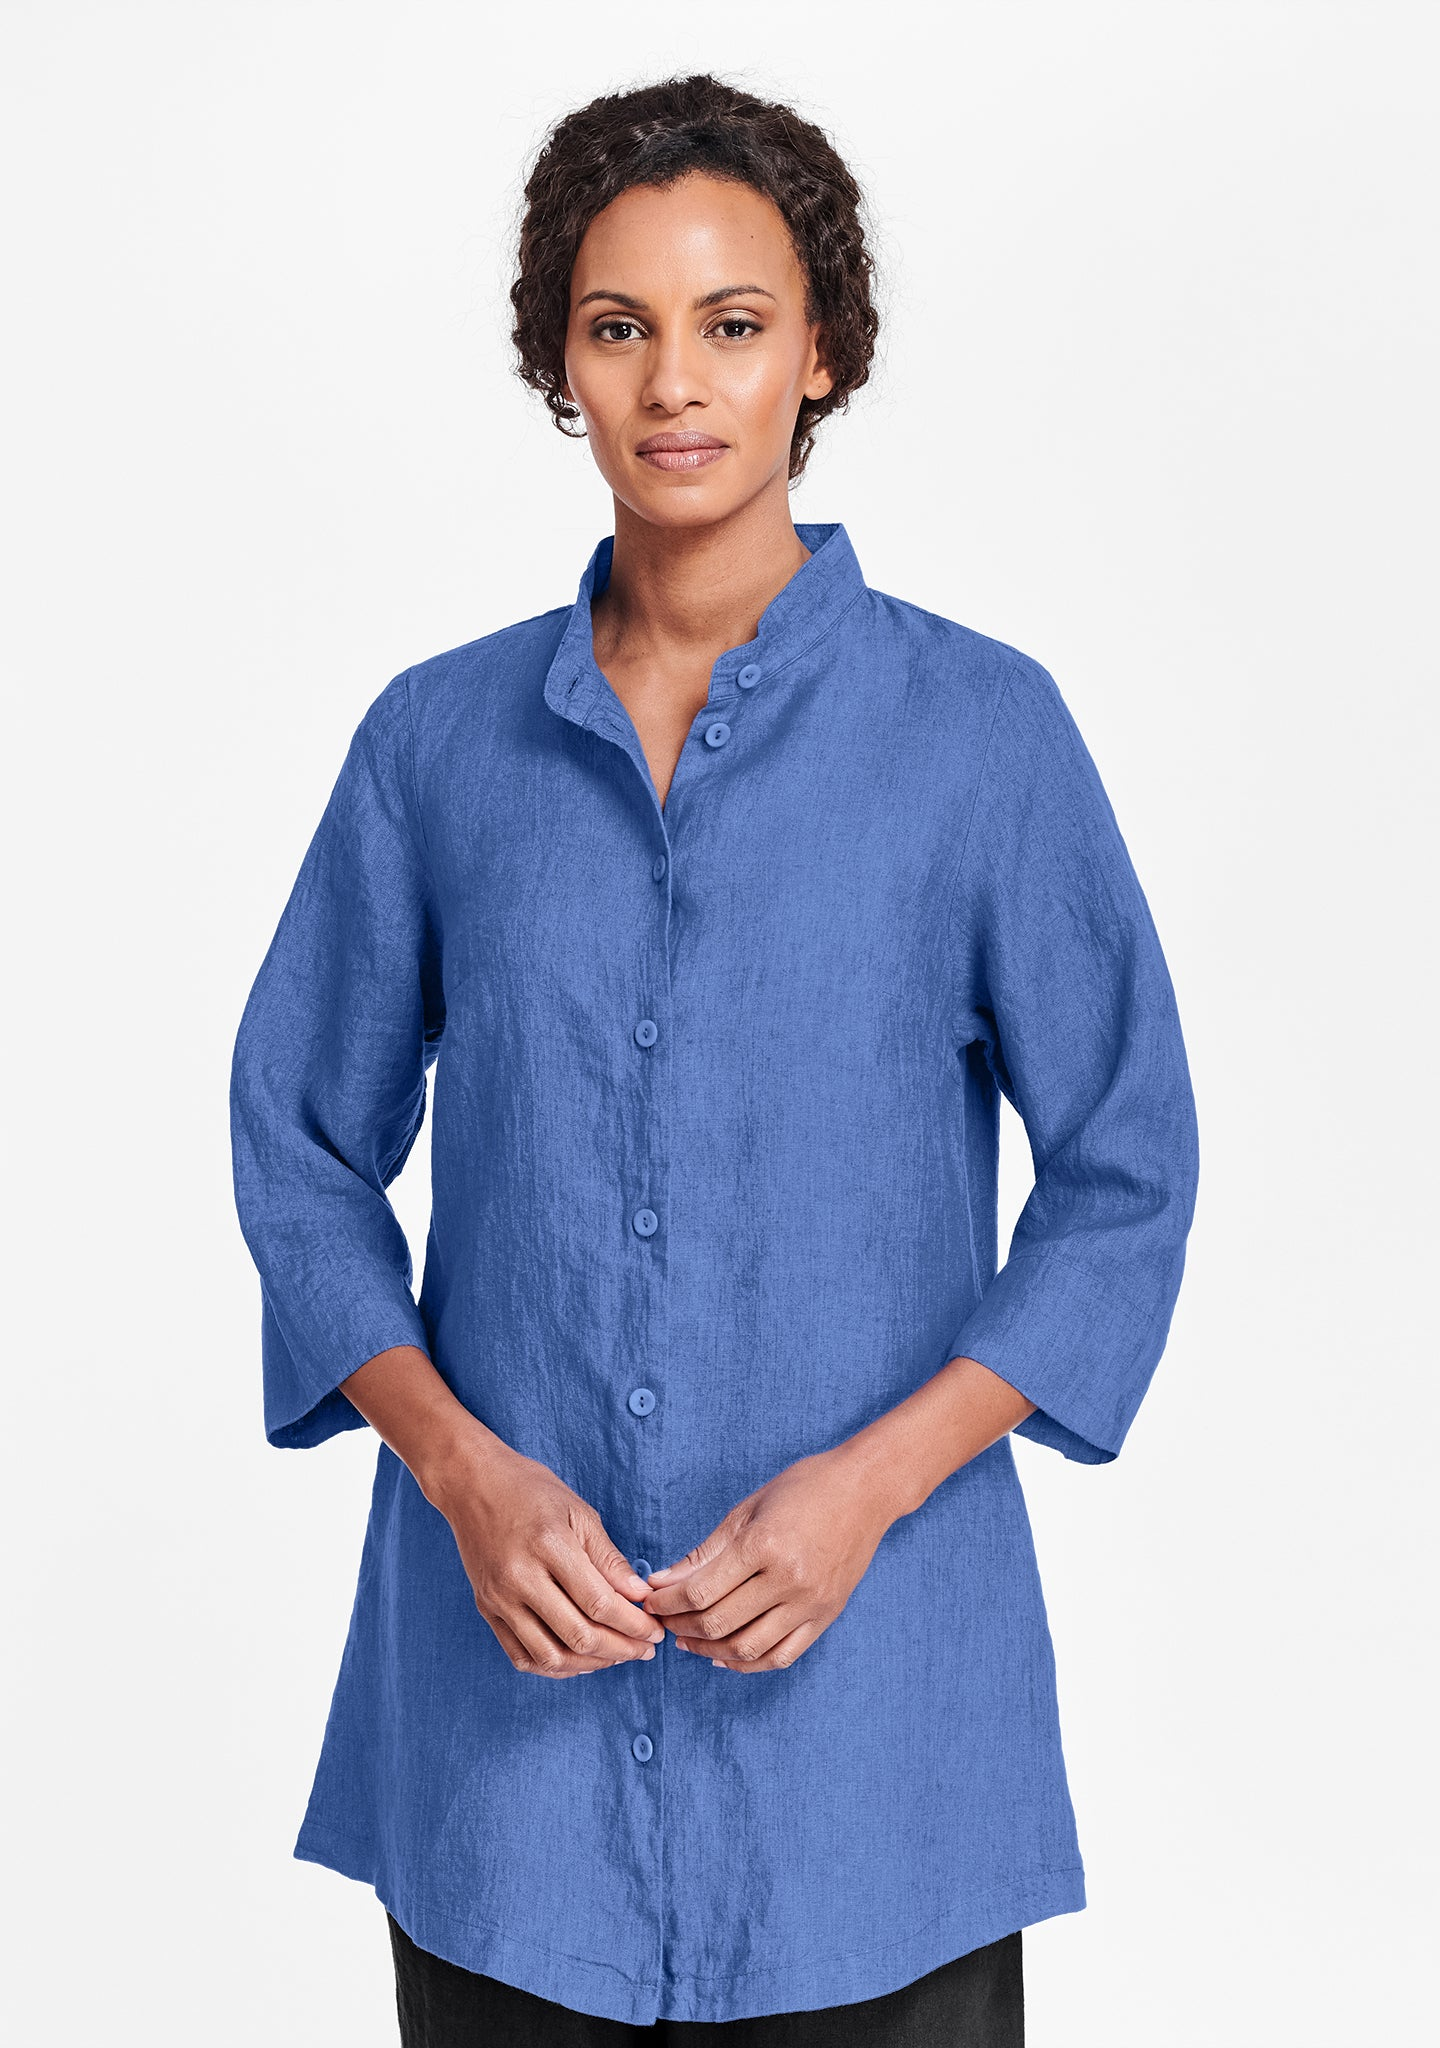 vintage shirt tunic blue